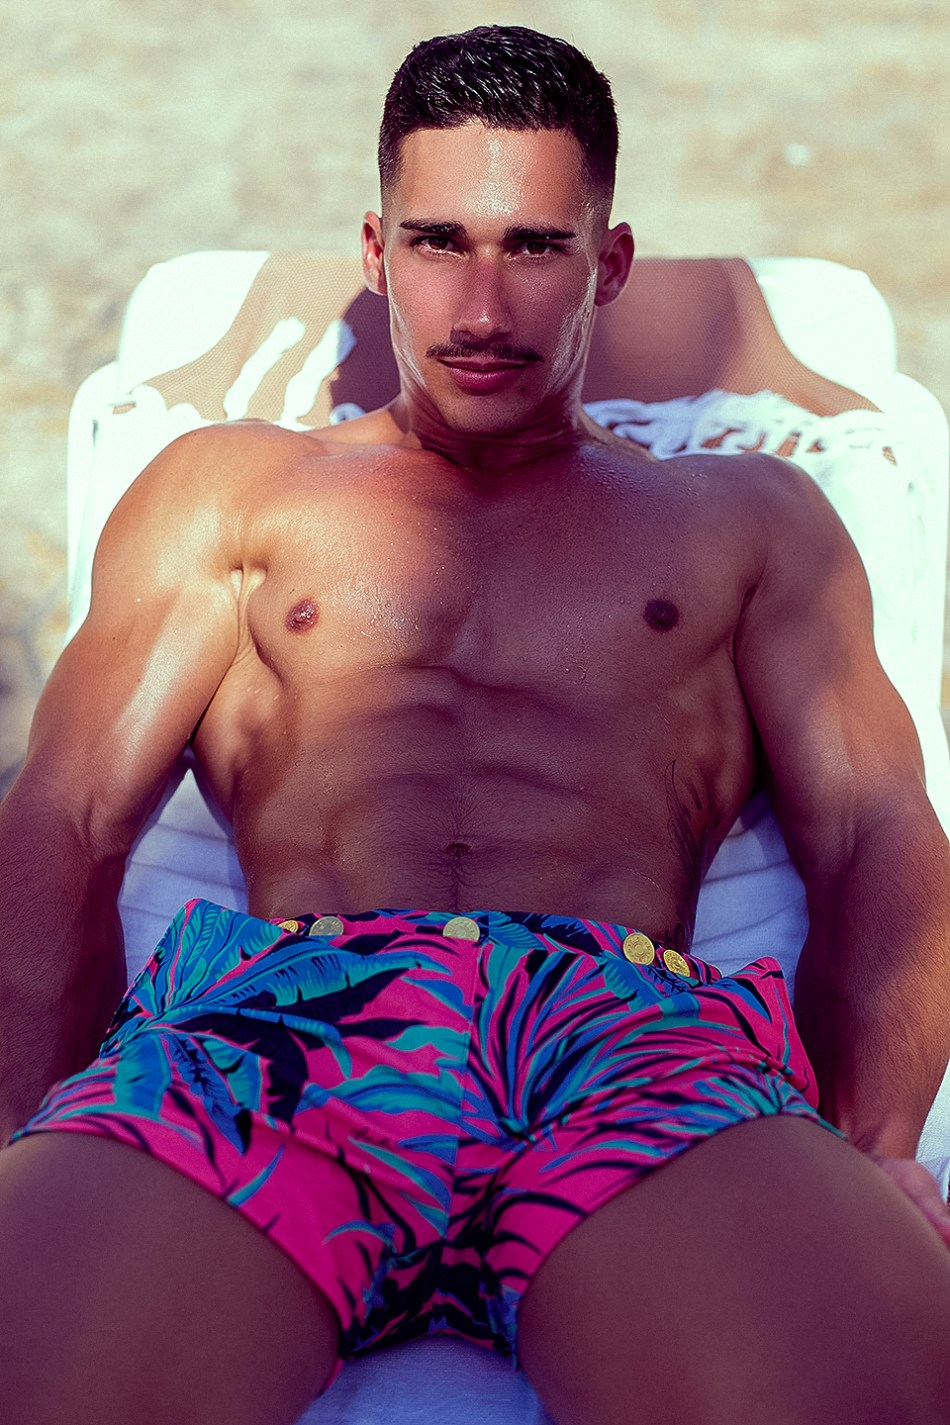 I think not all people is allowed to modeling Charlie by MZ pieces, I mean just this kind of guys who possess demigod bodies like Gabriel Arocha photographed by Adrian C. Martin for the exclusive swimwear brand.